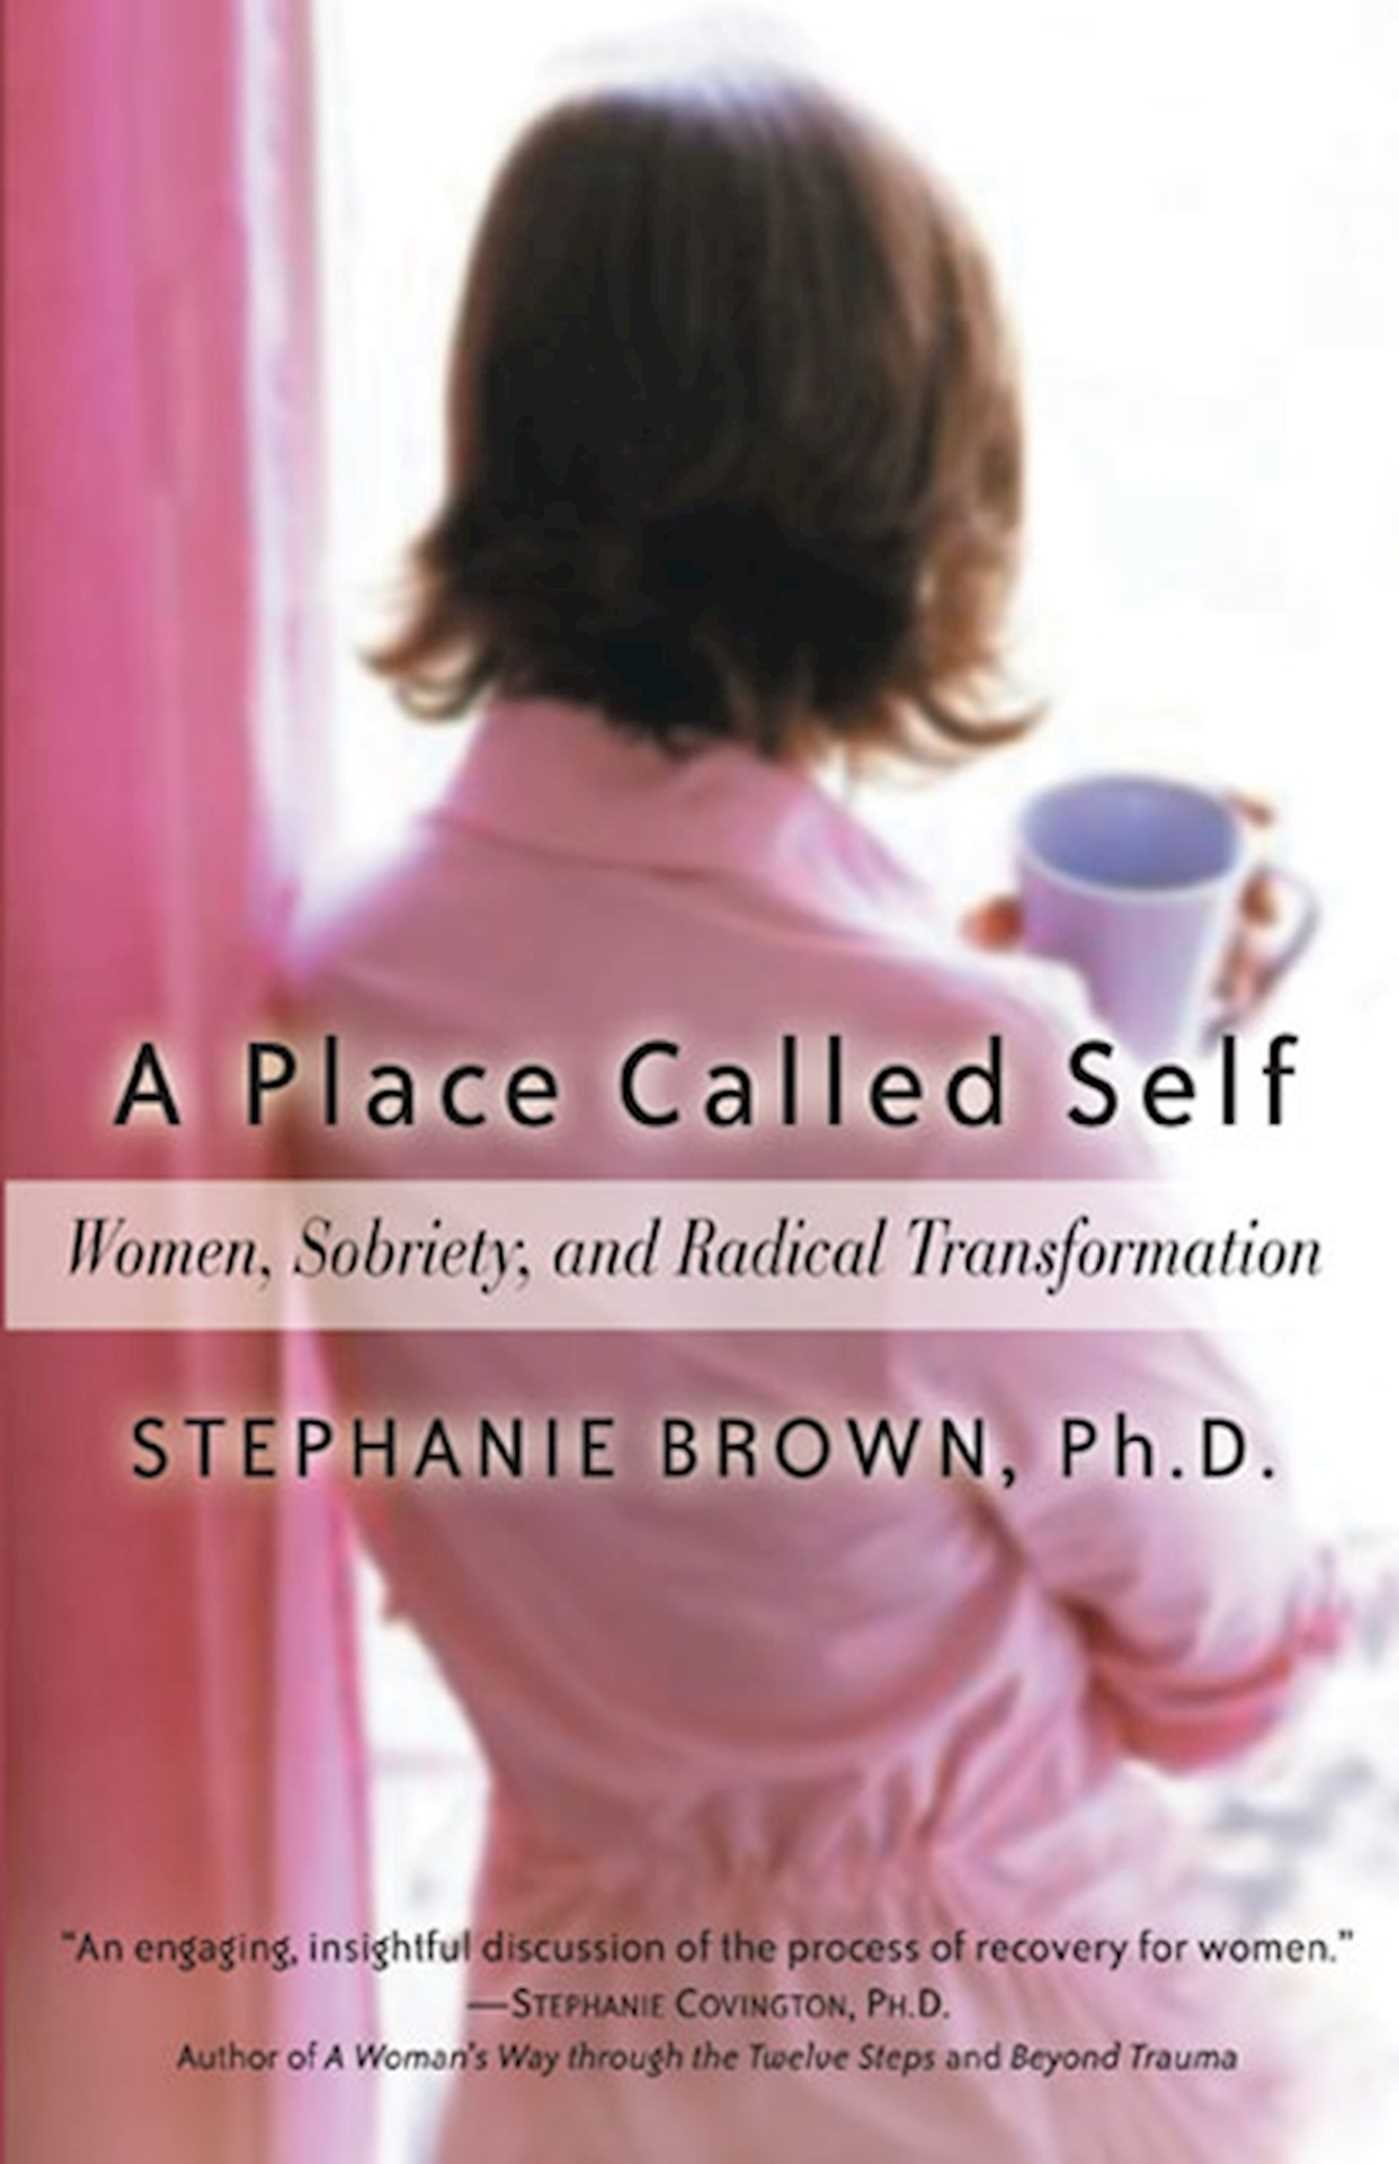 e0f33aa3 A Place Called Self: Women, Sobriety & Radical Transformation: Stephanie  Brown: 9781592850983: Amazon.com: Books